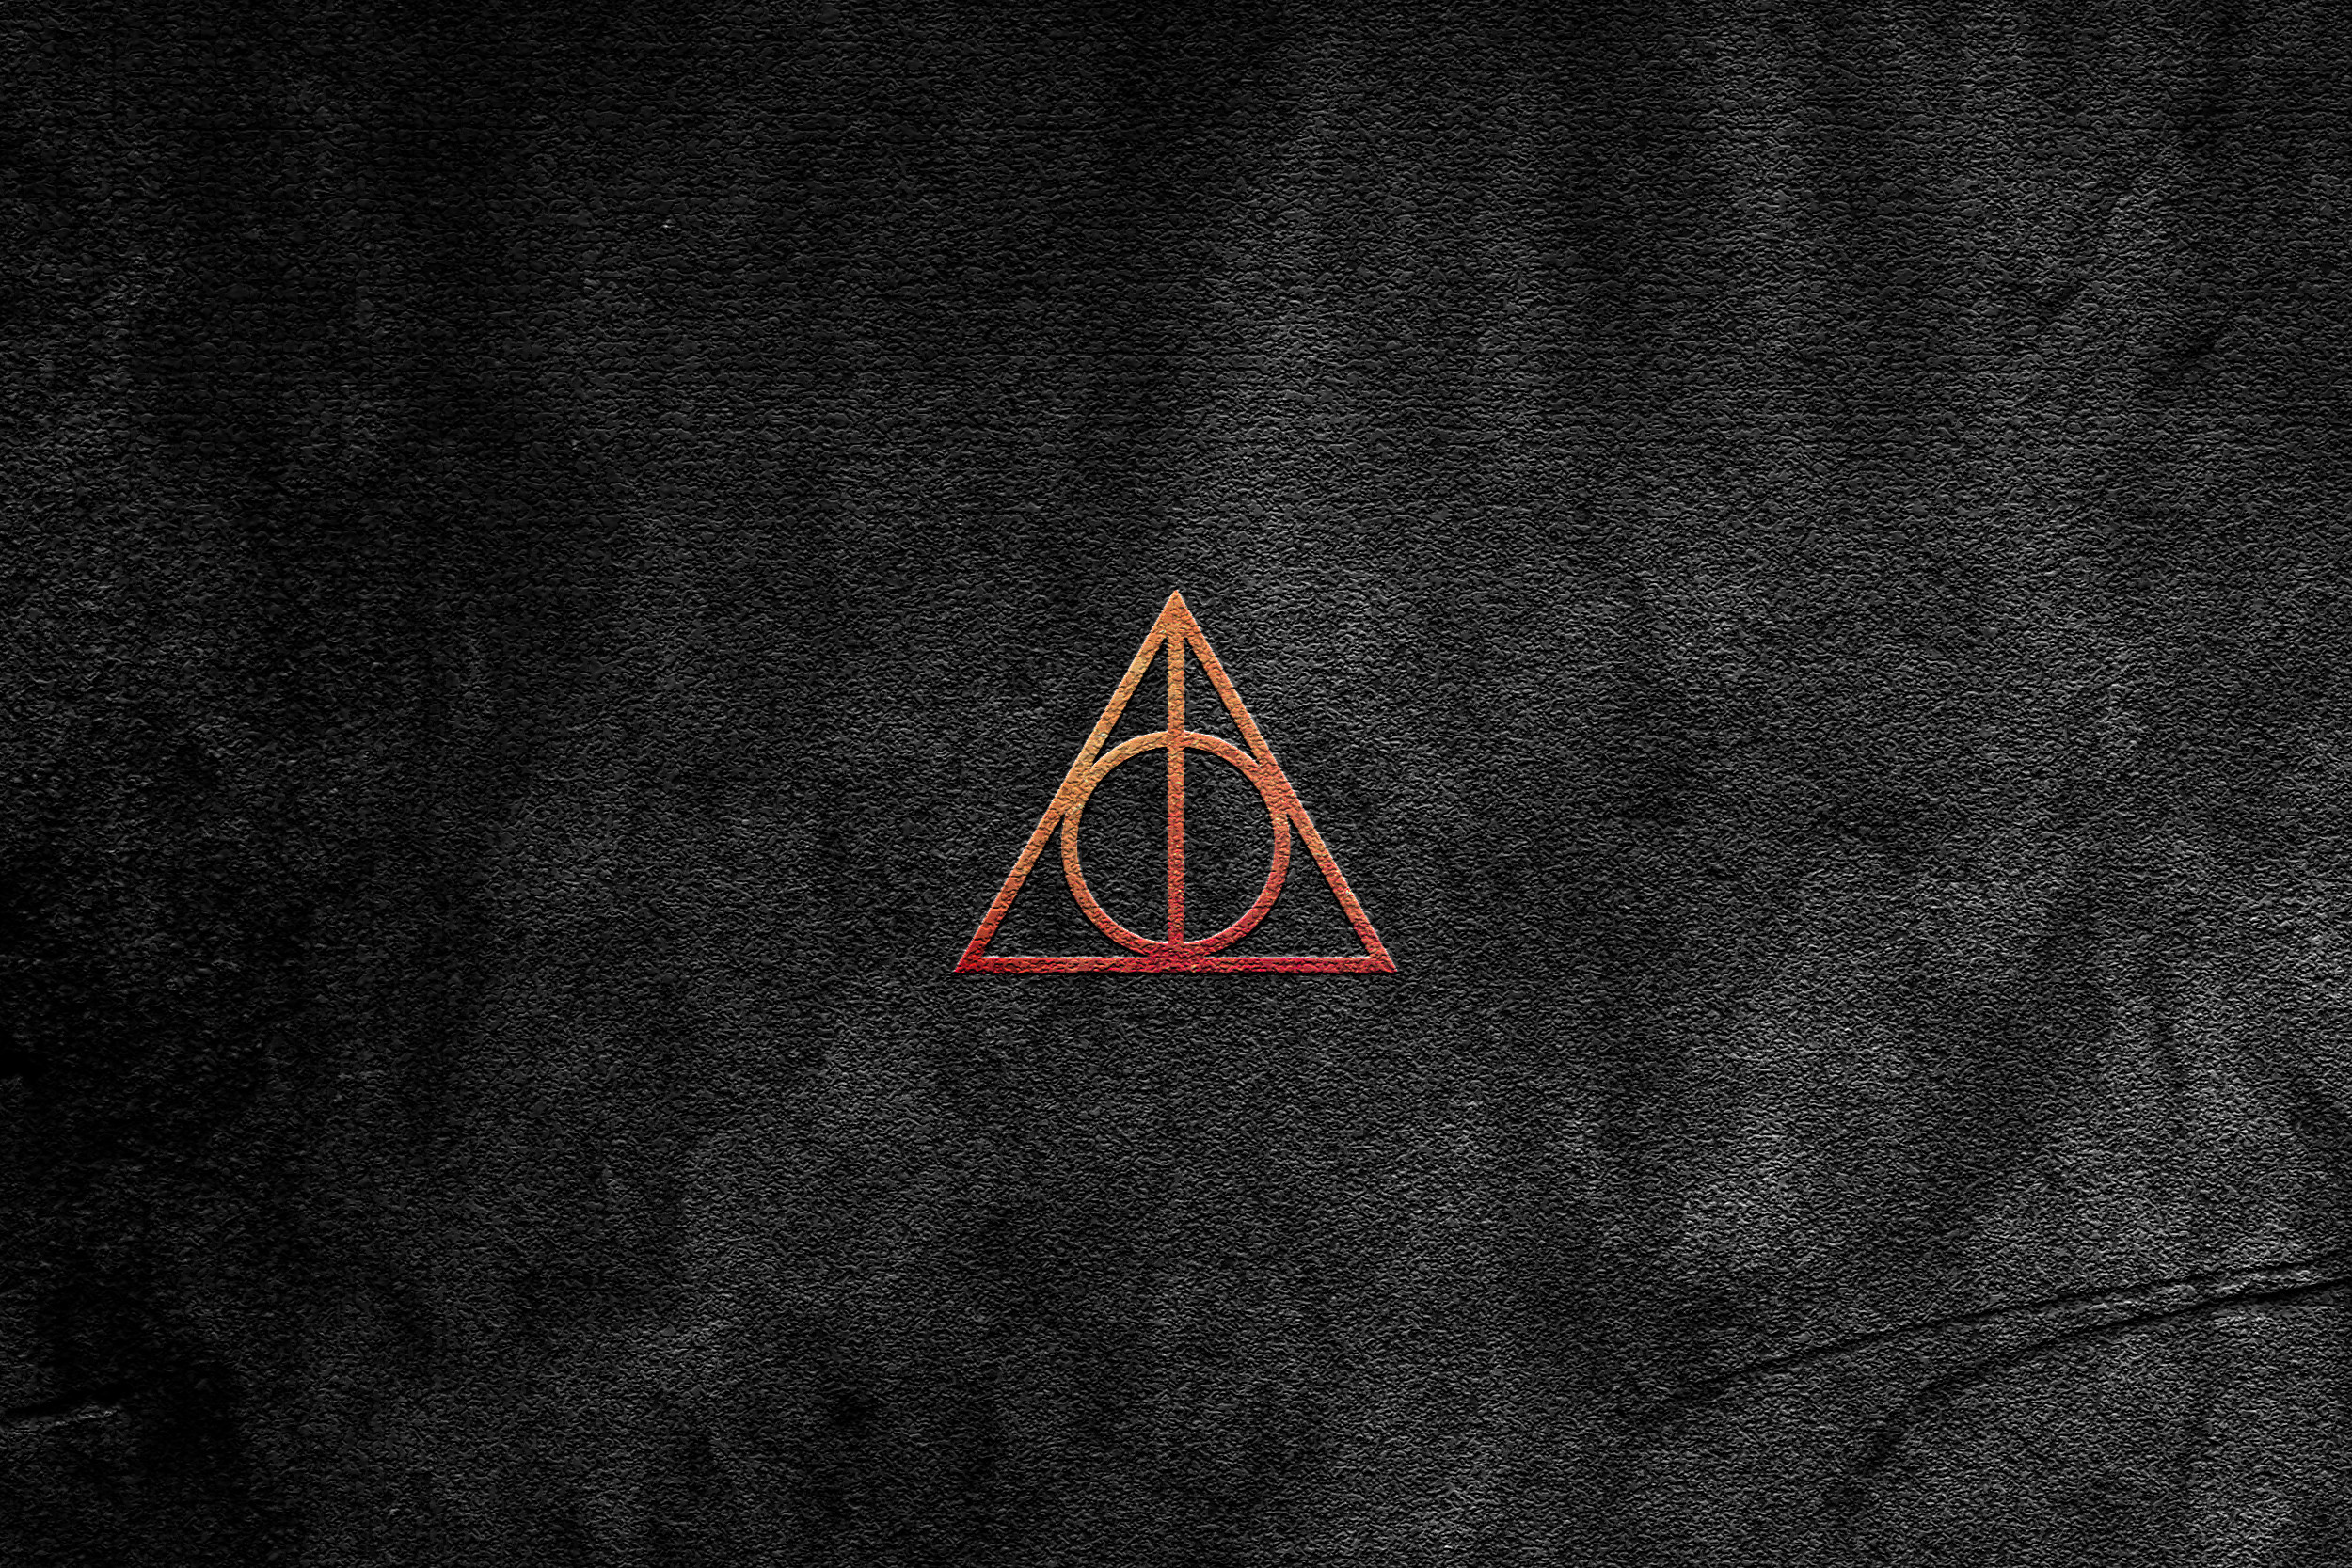 Cars Movie Hd Wallpapers Deathly Hallows Symbol Wallpaper 56 Images